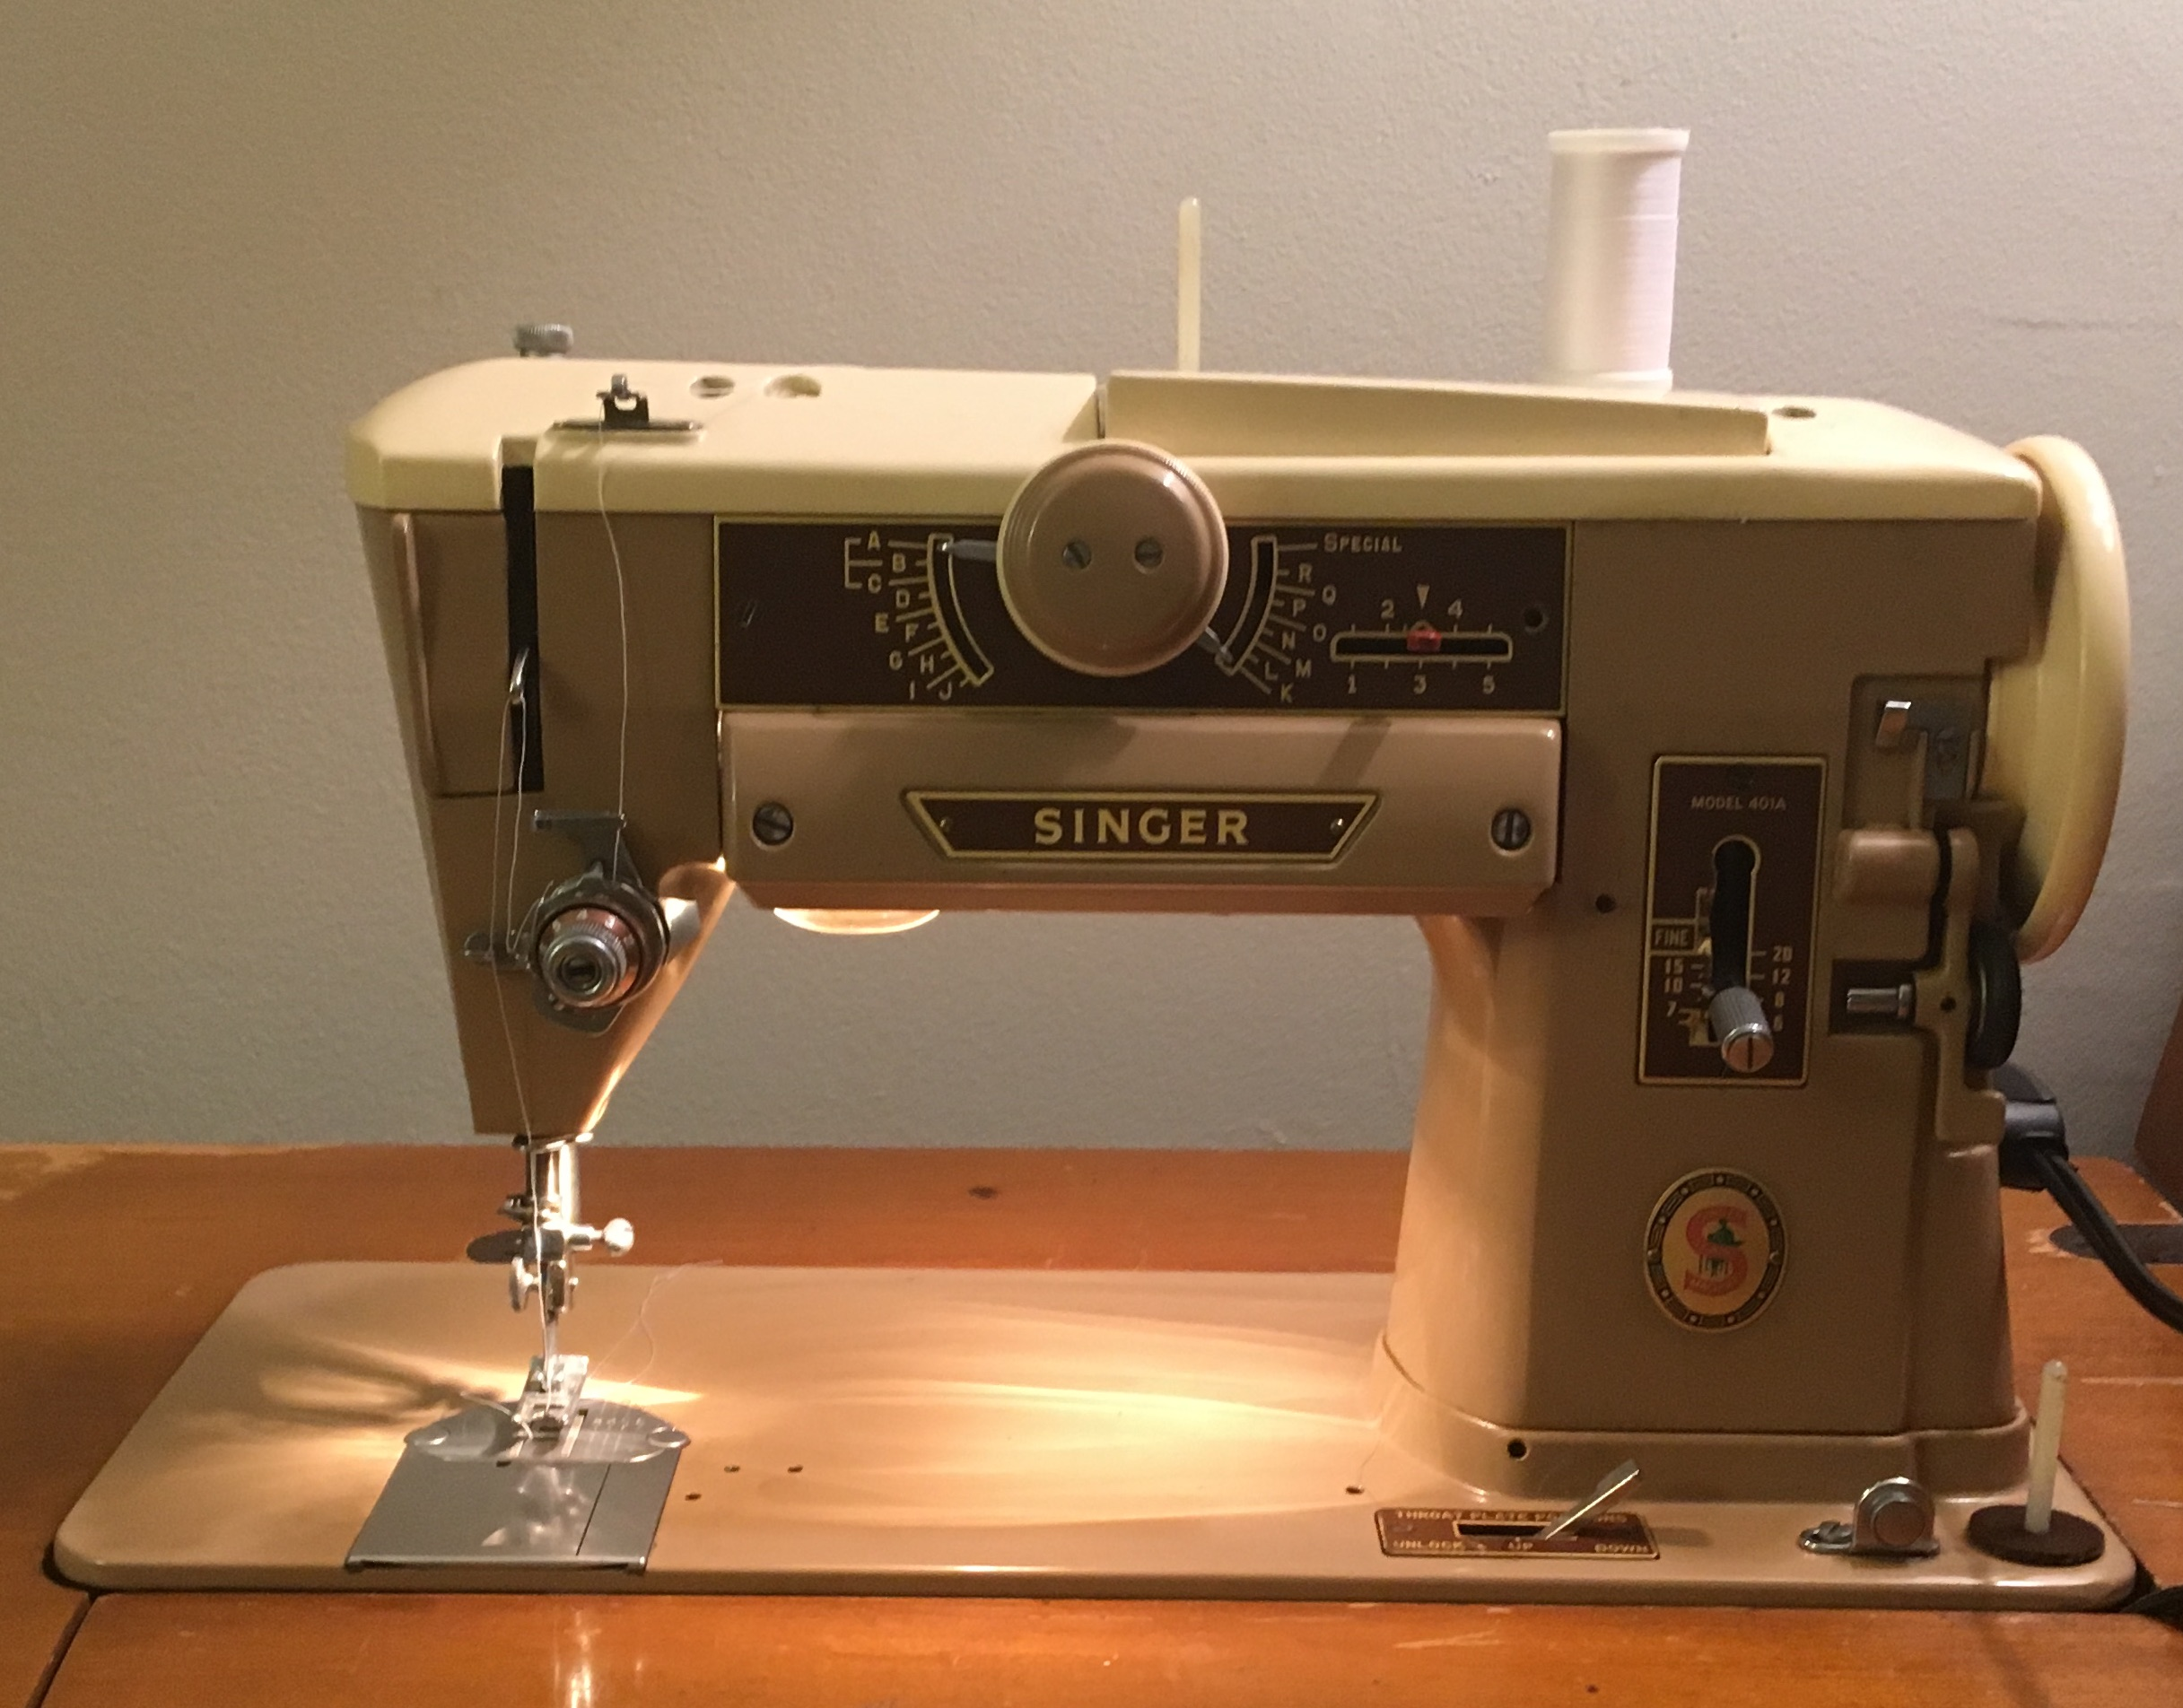 Singer 401a sewing machine.